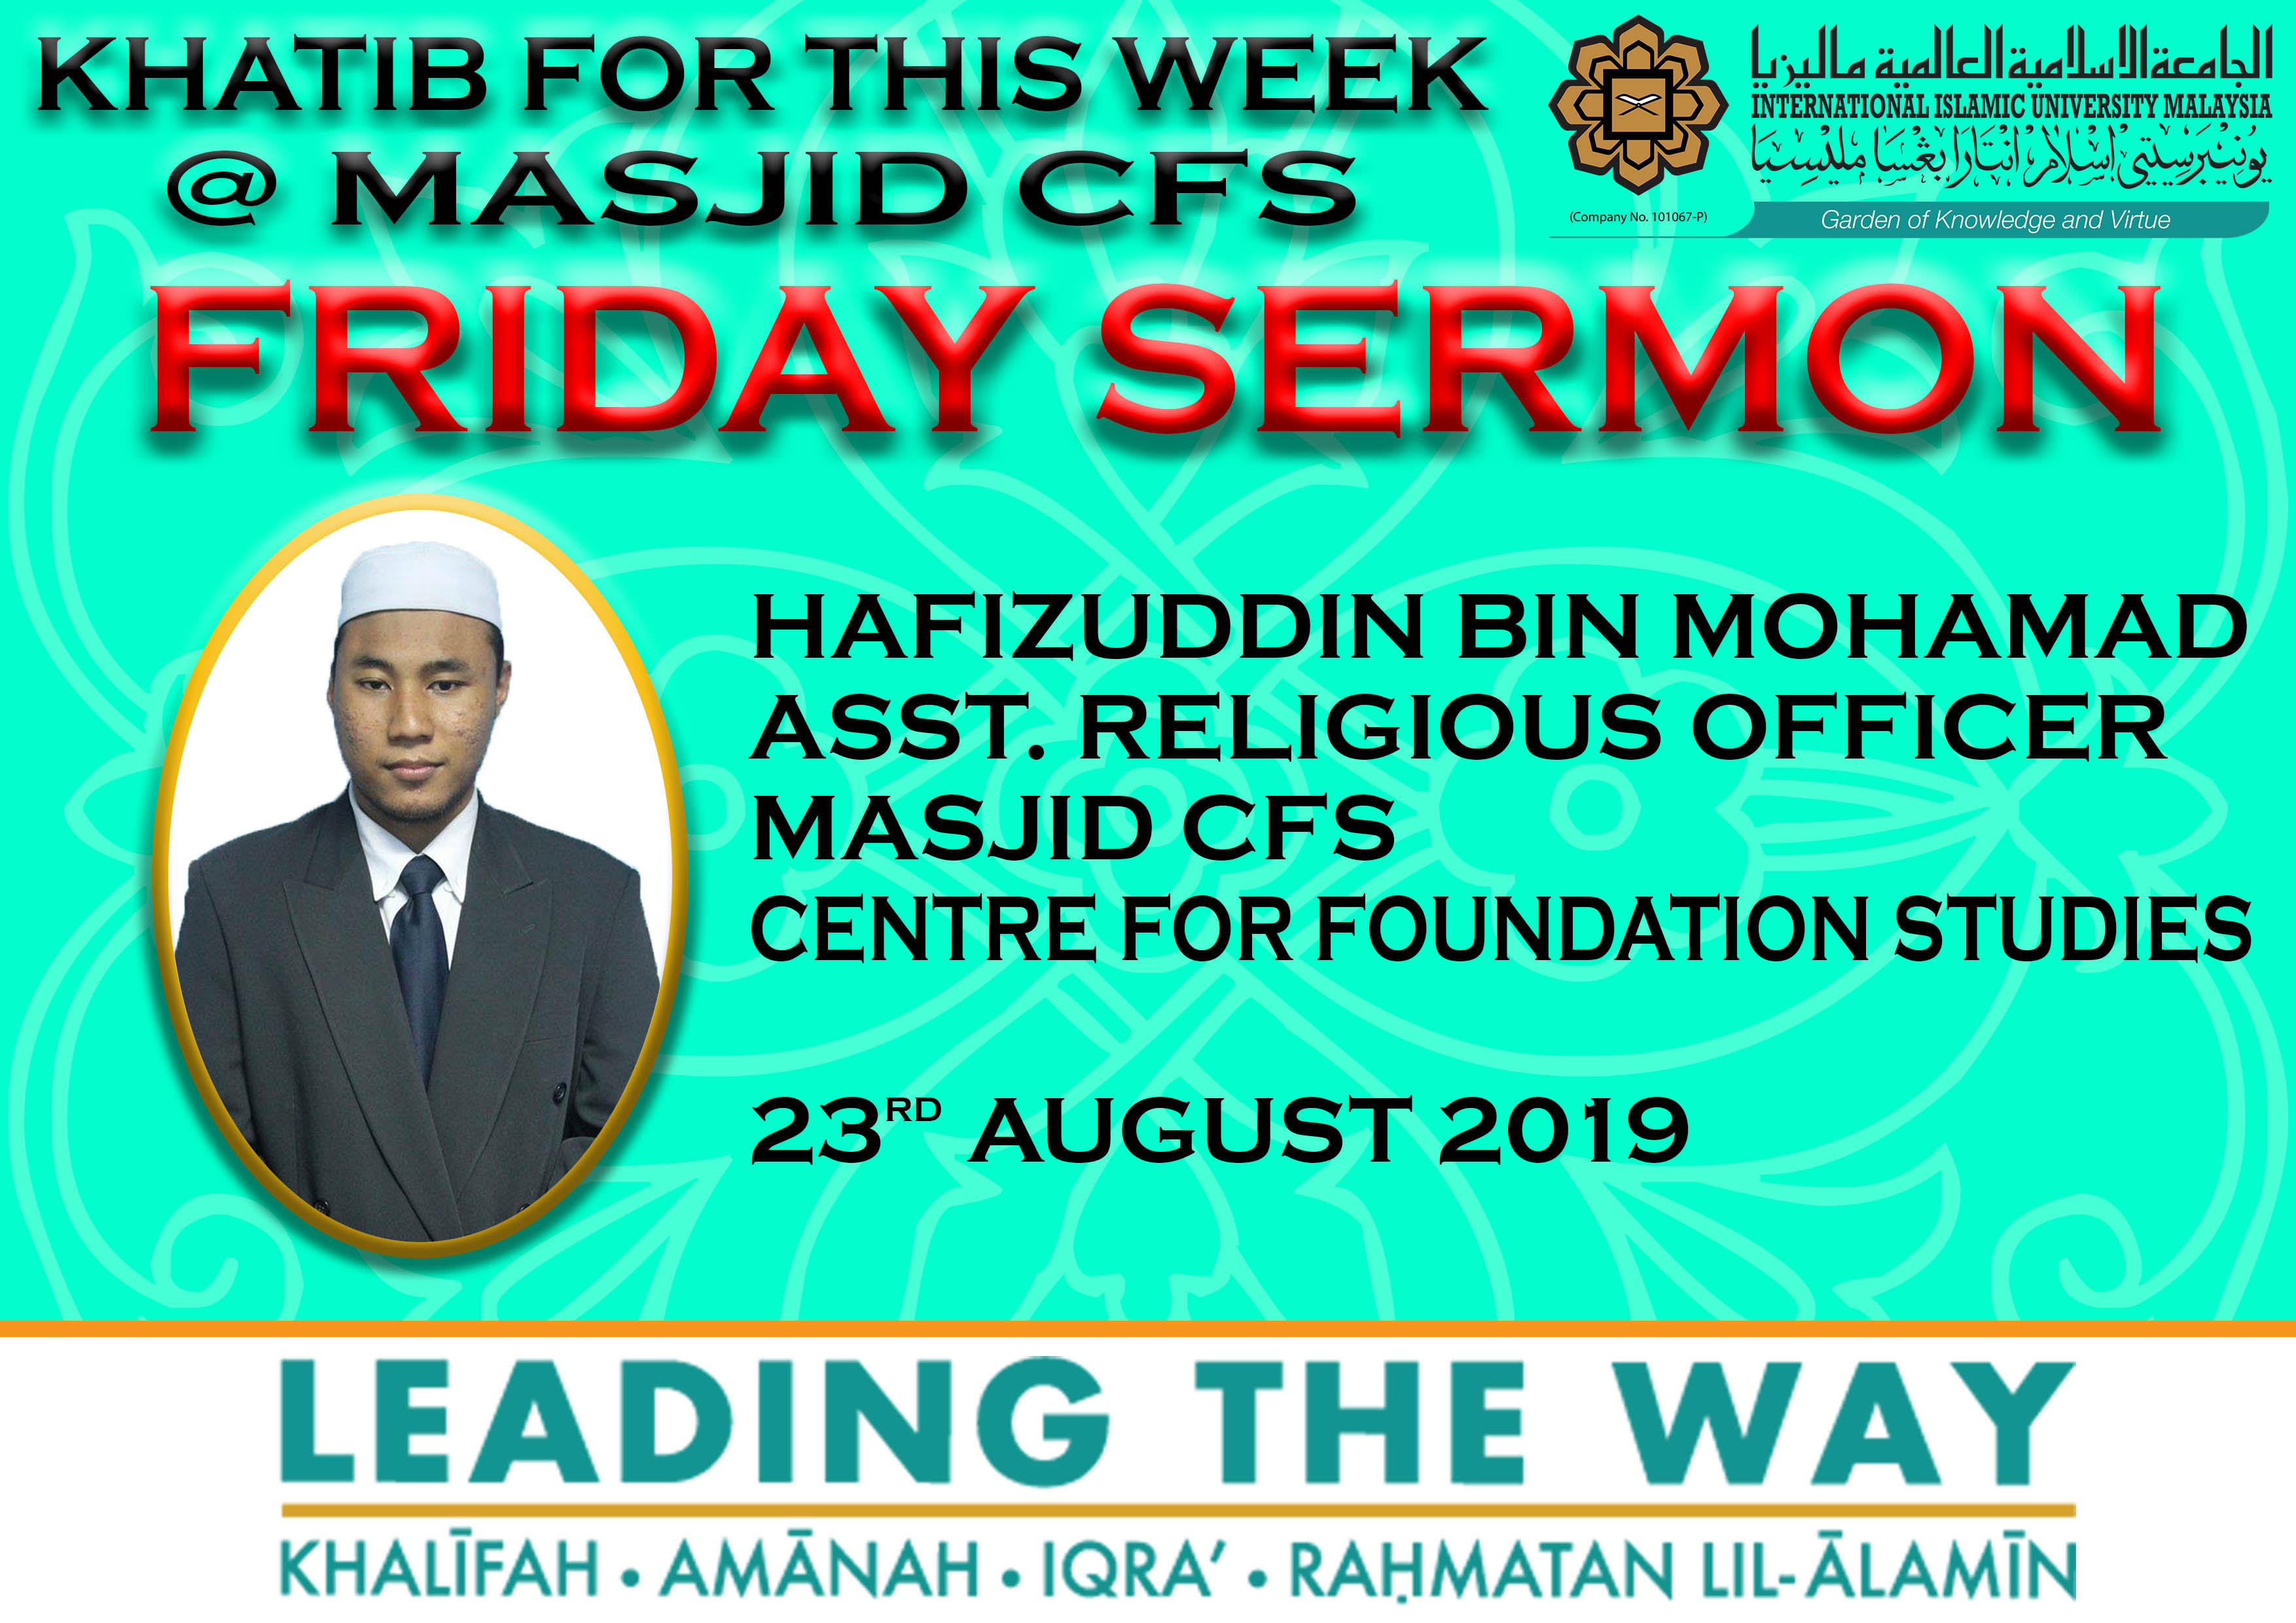 KHATIB THIS WEEK –  23rd AUGUST 2019 (FRIDAY) MASJID CFS IIUM, GAMBANG CAMPUS